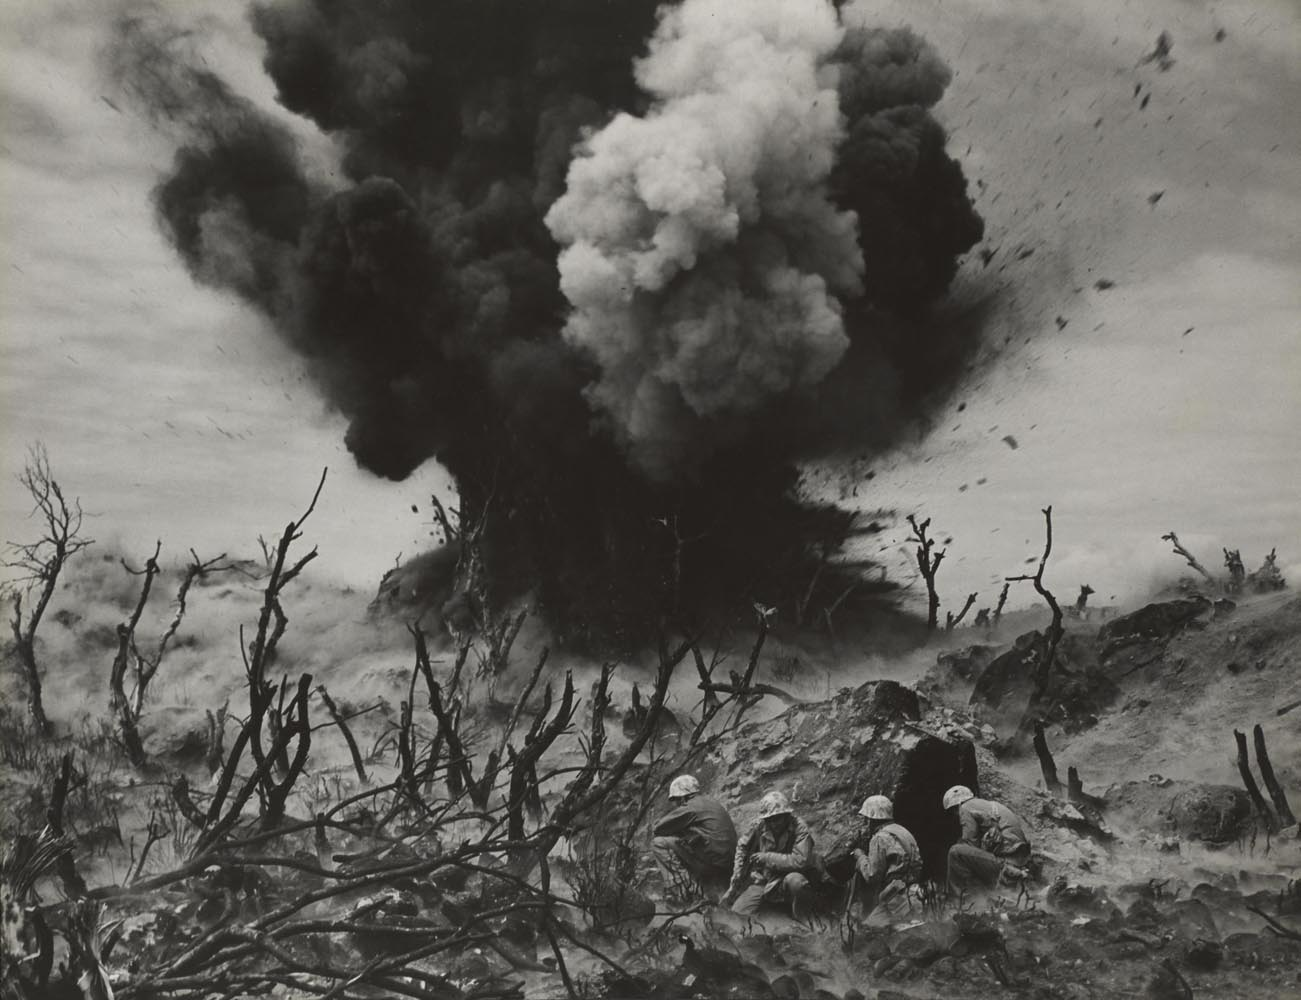 War Photography: Images of Armed Conflict and Its Aftermath (The Museum of Fine Arts Houston, Yale University Press)provides an astounding collection of images recorded by more than 280 photographers over two centuries. This is a book for the ages. Houston Fine Arts photography curator Anne Wilkes Tucker examines and presents to the world an outstanding selection that reflects her remarkable vision.                                                               —Kira Pollack, director of photography, TIME